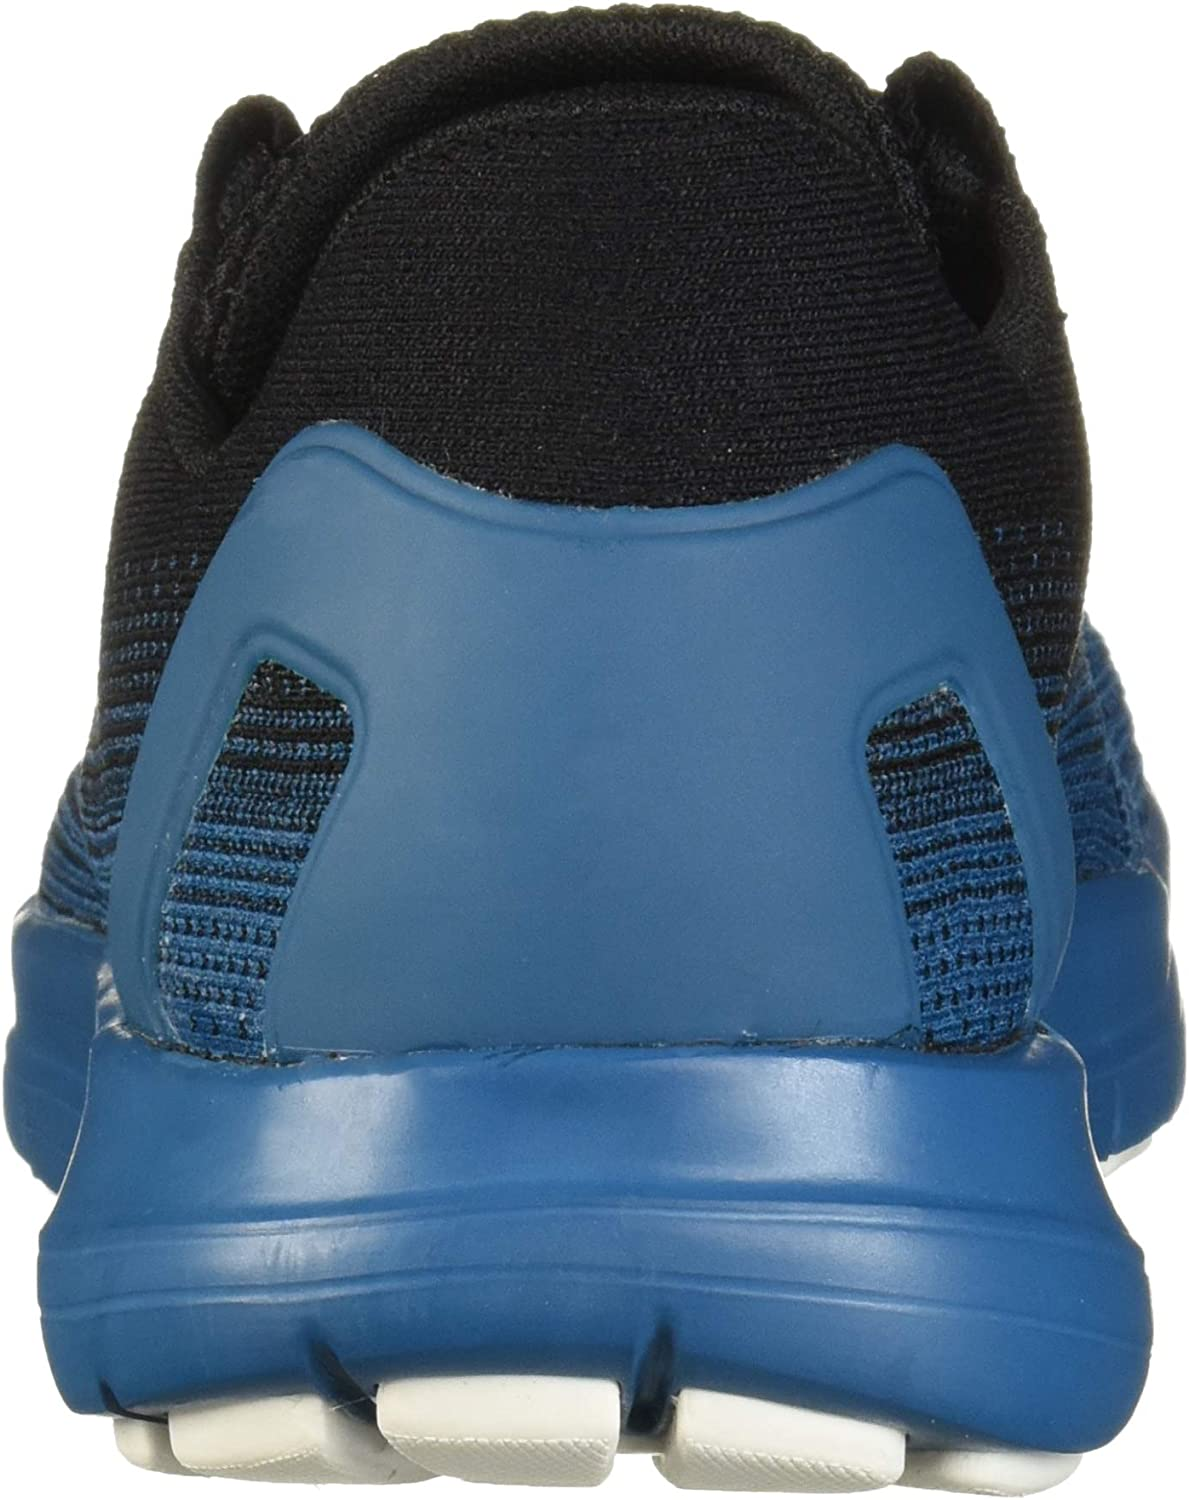 Under Armour Mens Remix 2.0 Running Shoes